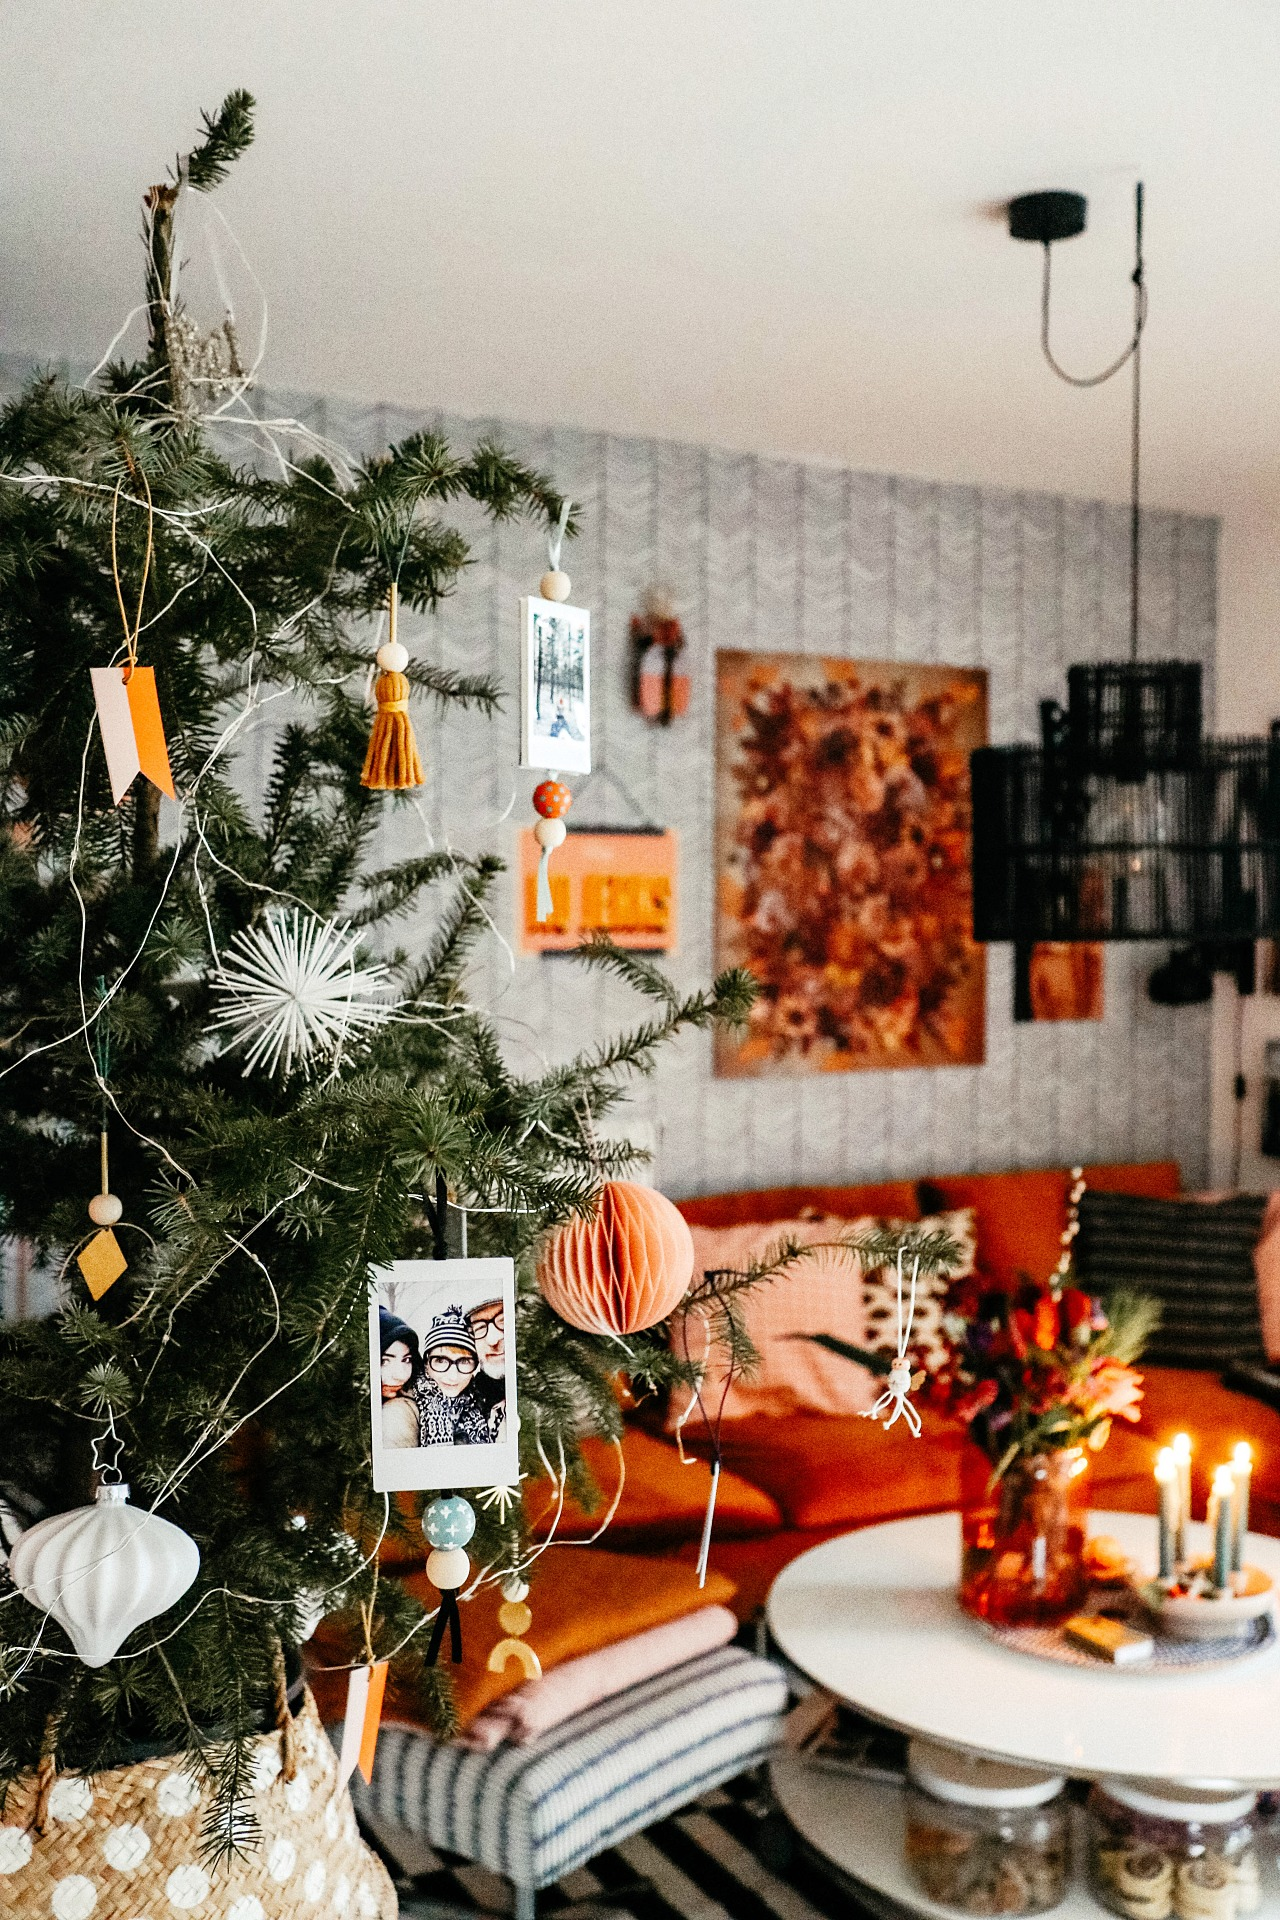 Stay At Home Weihnachten 2020 | luziapimpinella.com